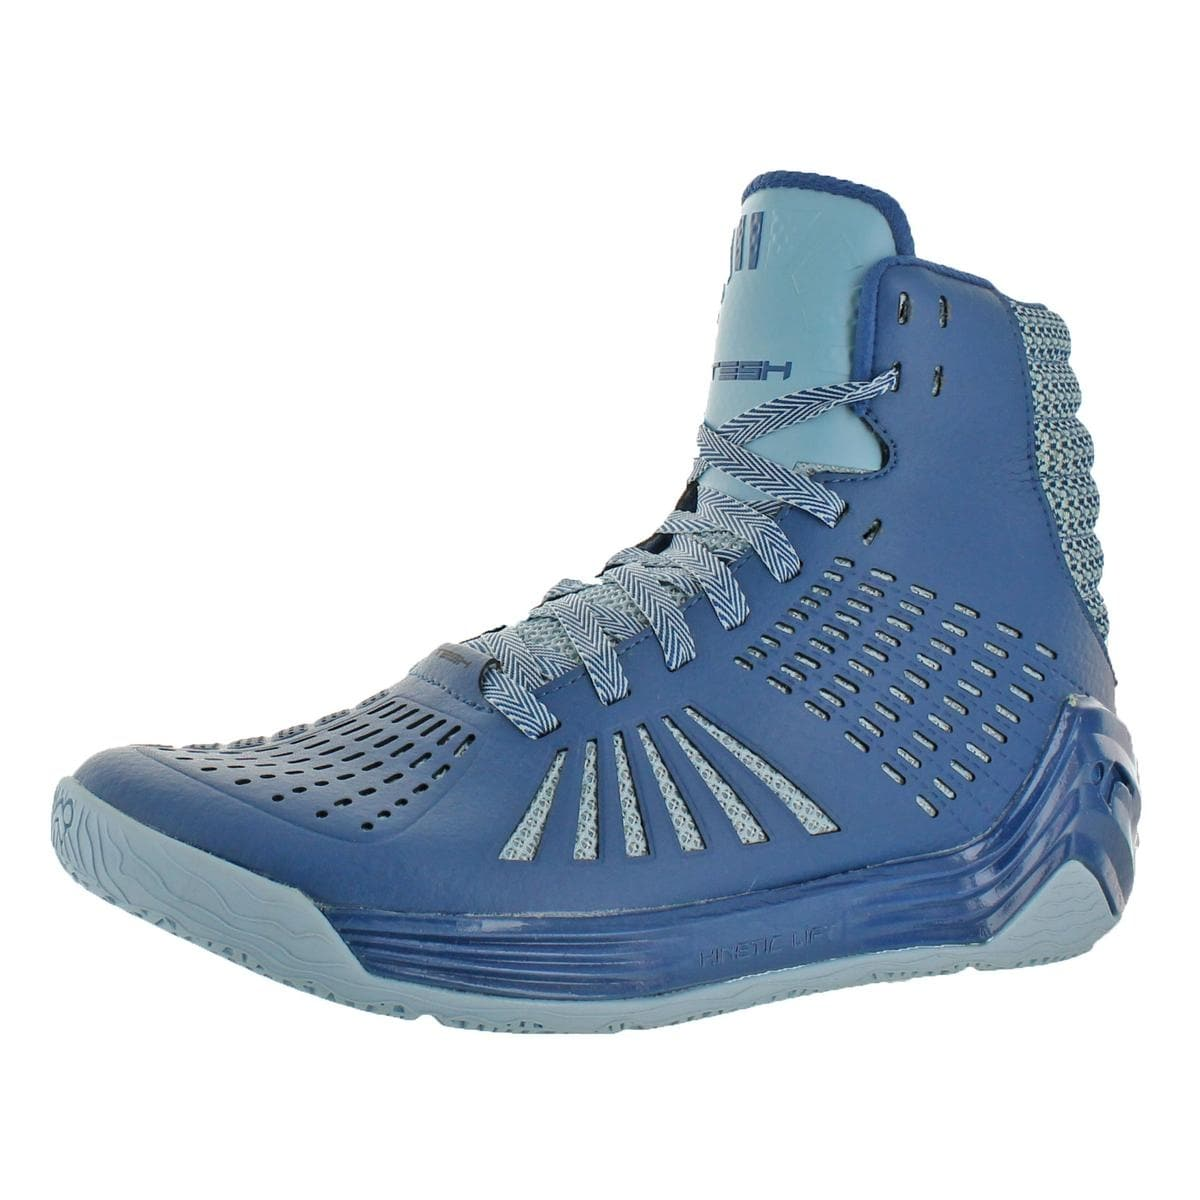 9b3684d95120 Shop Tesh Mens Trigger Basketball Shoes High Top Perforated - Free Shipping  On Orders Over  45 - Overstock - 22338775